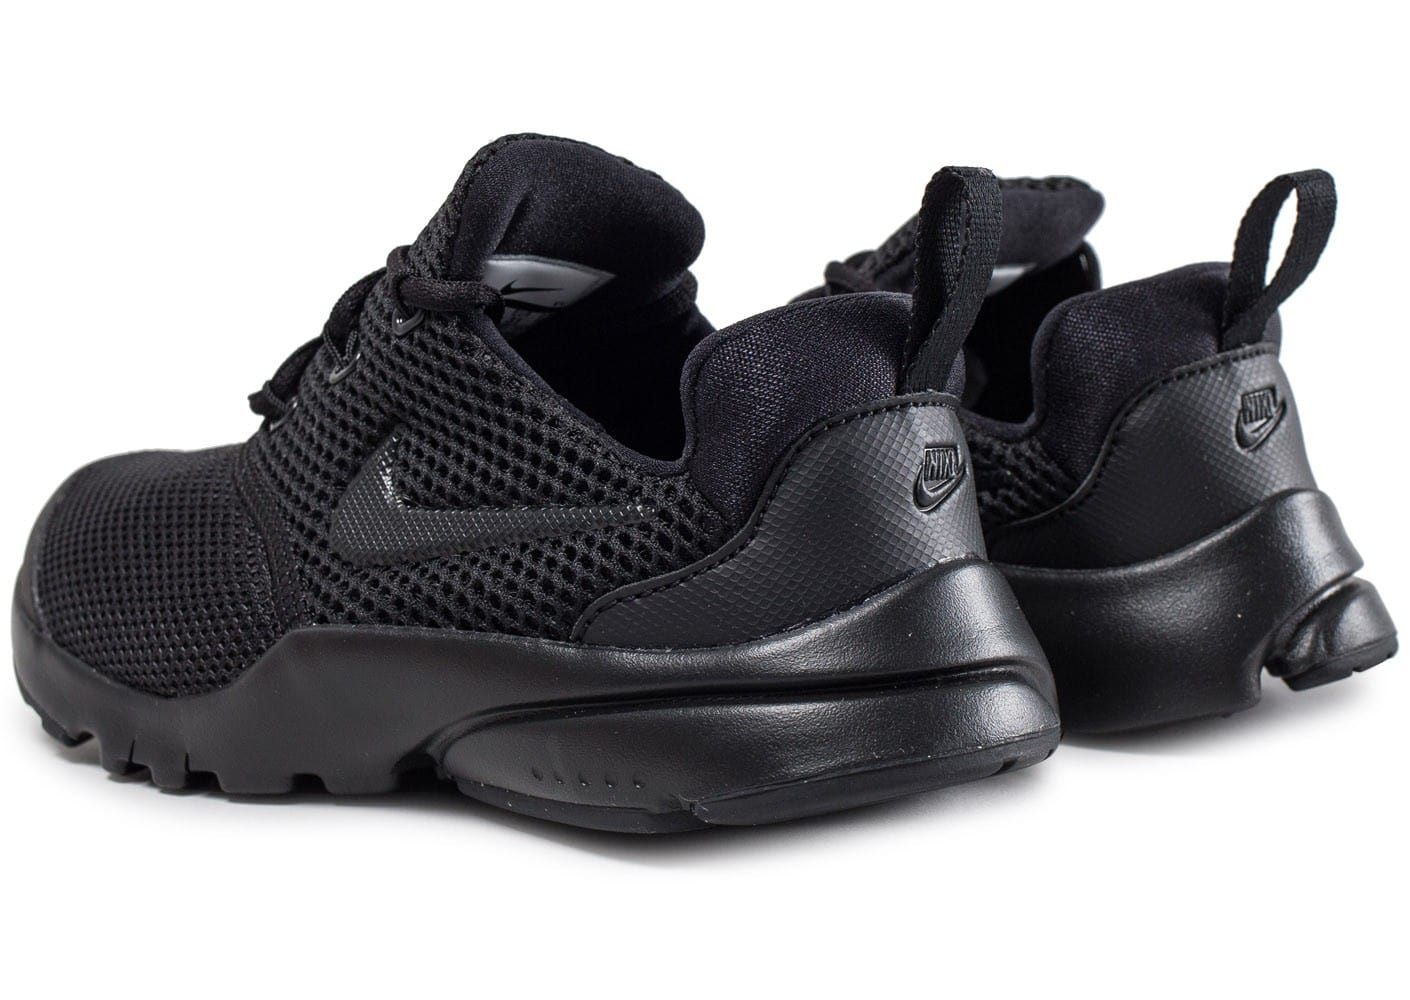 nike presto fly enfant noire chaussures enfant chausport. Black Bedroom Furniture Sets. Home Design Ideas